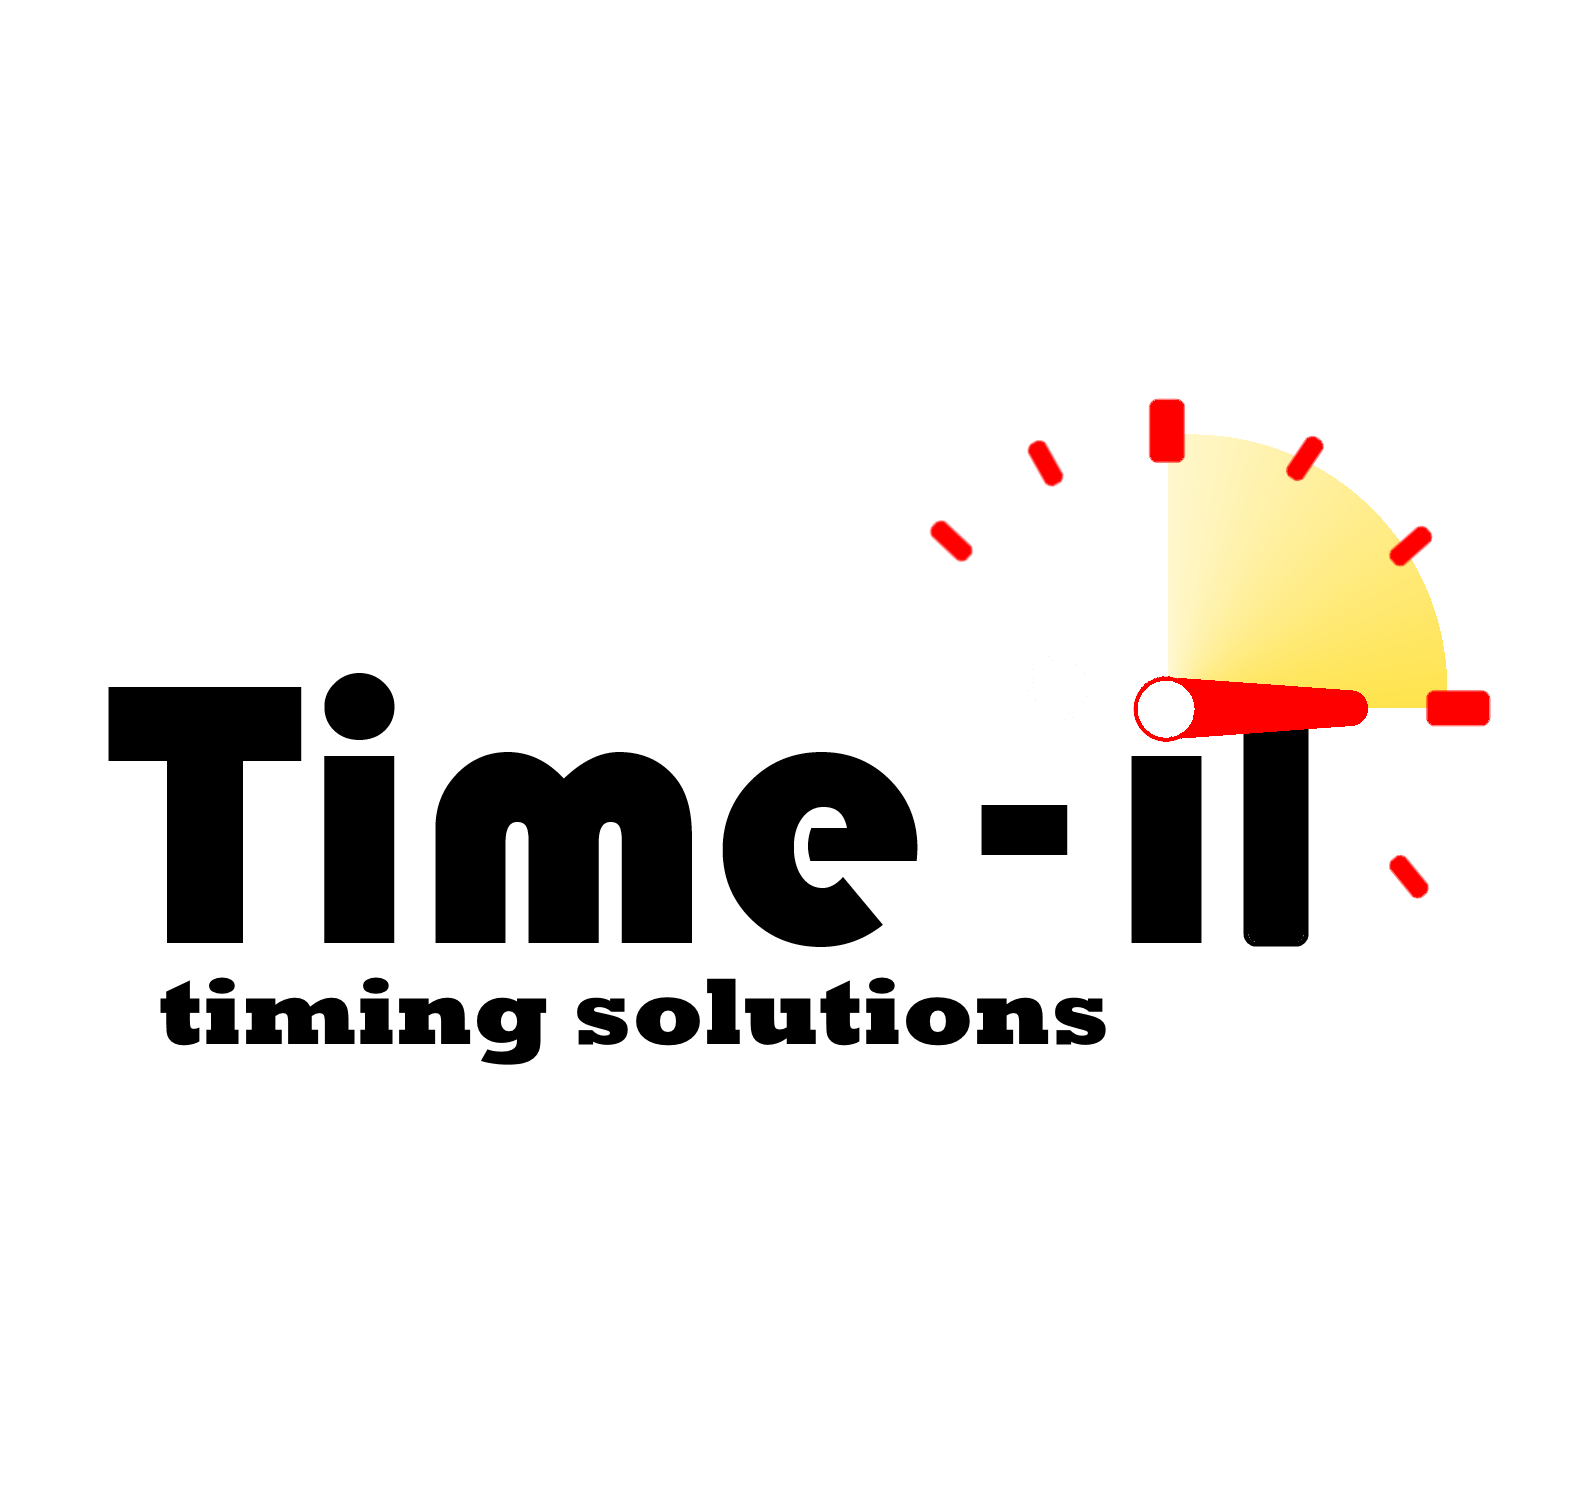 TIME-IT